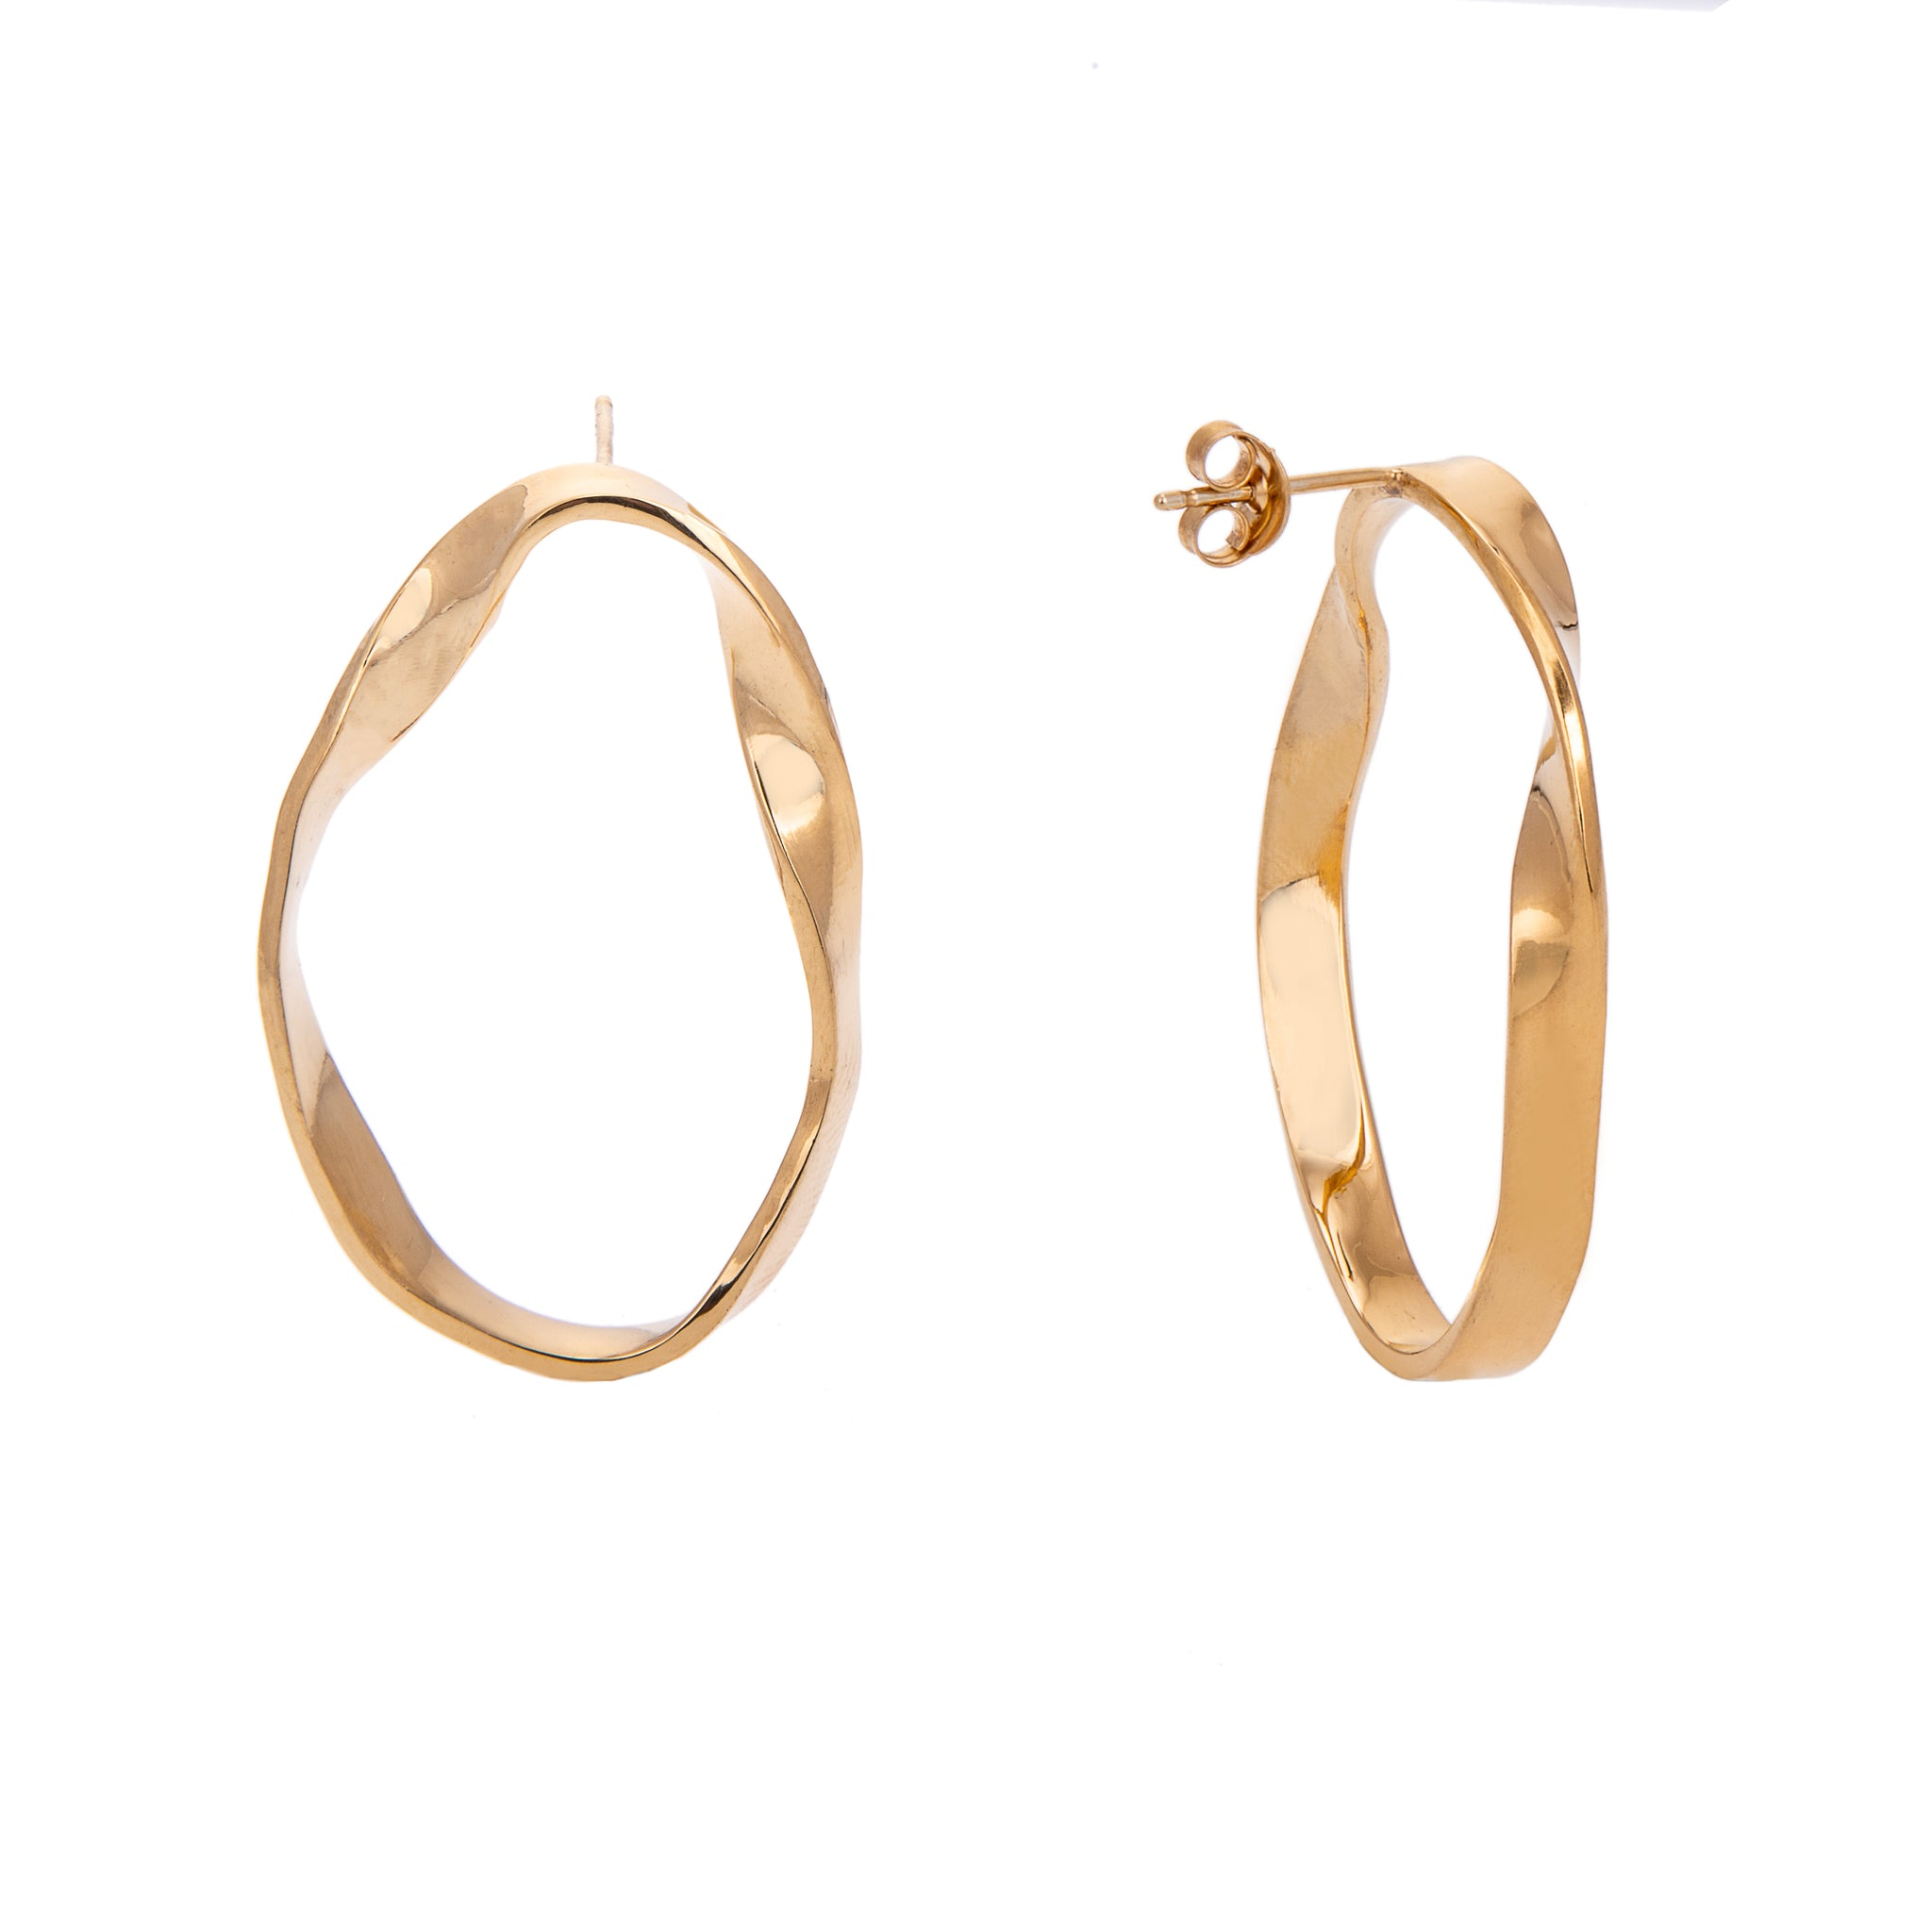 LARGE LOKA CONTOUR EARRINGS GOLD